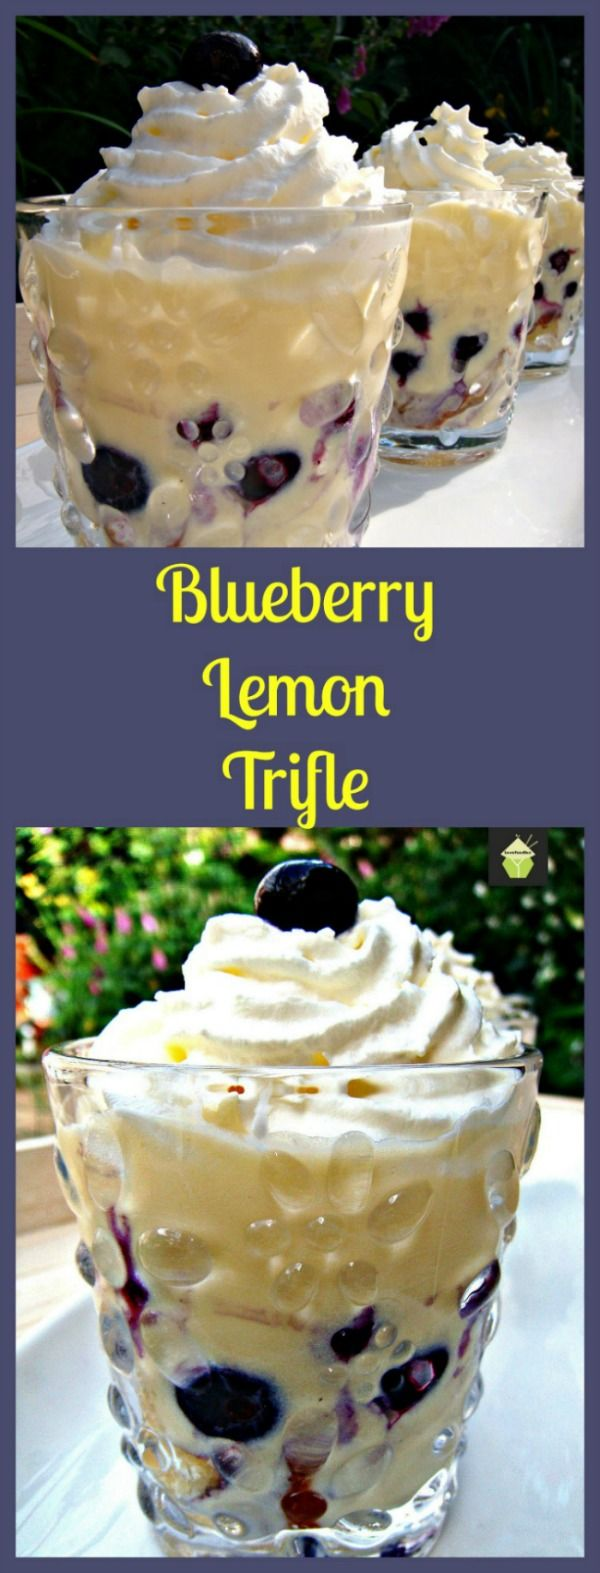 Blueberry and Lemon Trifle. This is just sublime! Layers of fresh Lemon Cake, Creamy Custard and Whipped Cream and of course a generous sprinkling of blueberries throughout. Please enjoy!